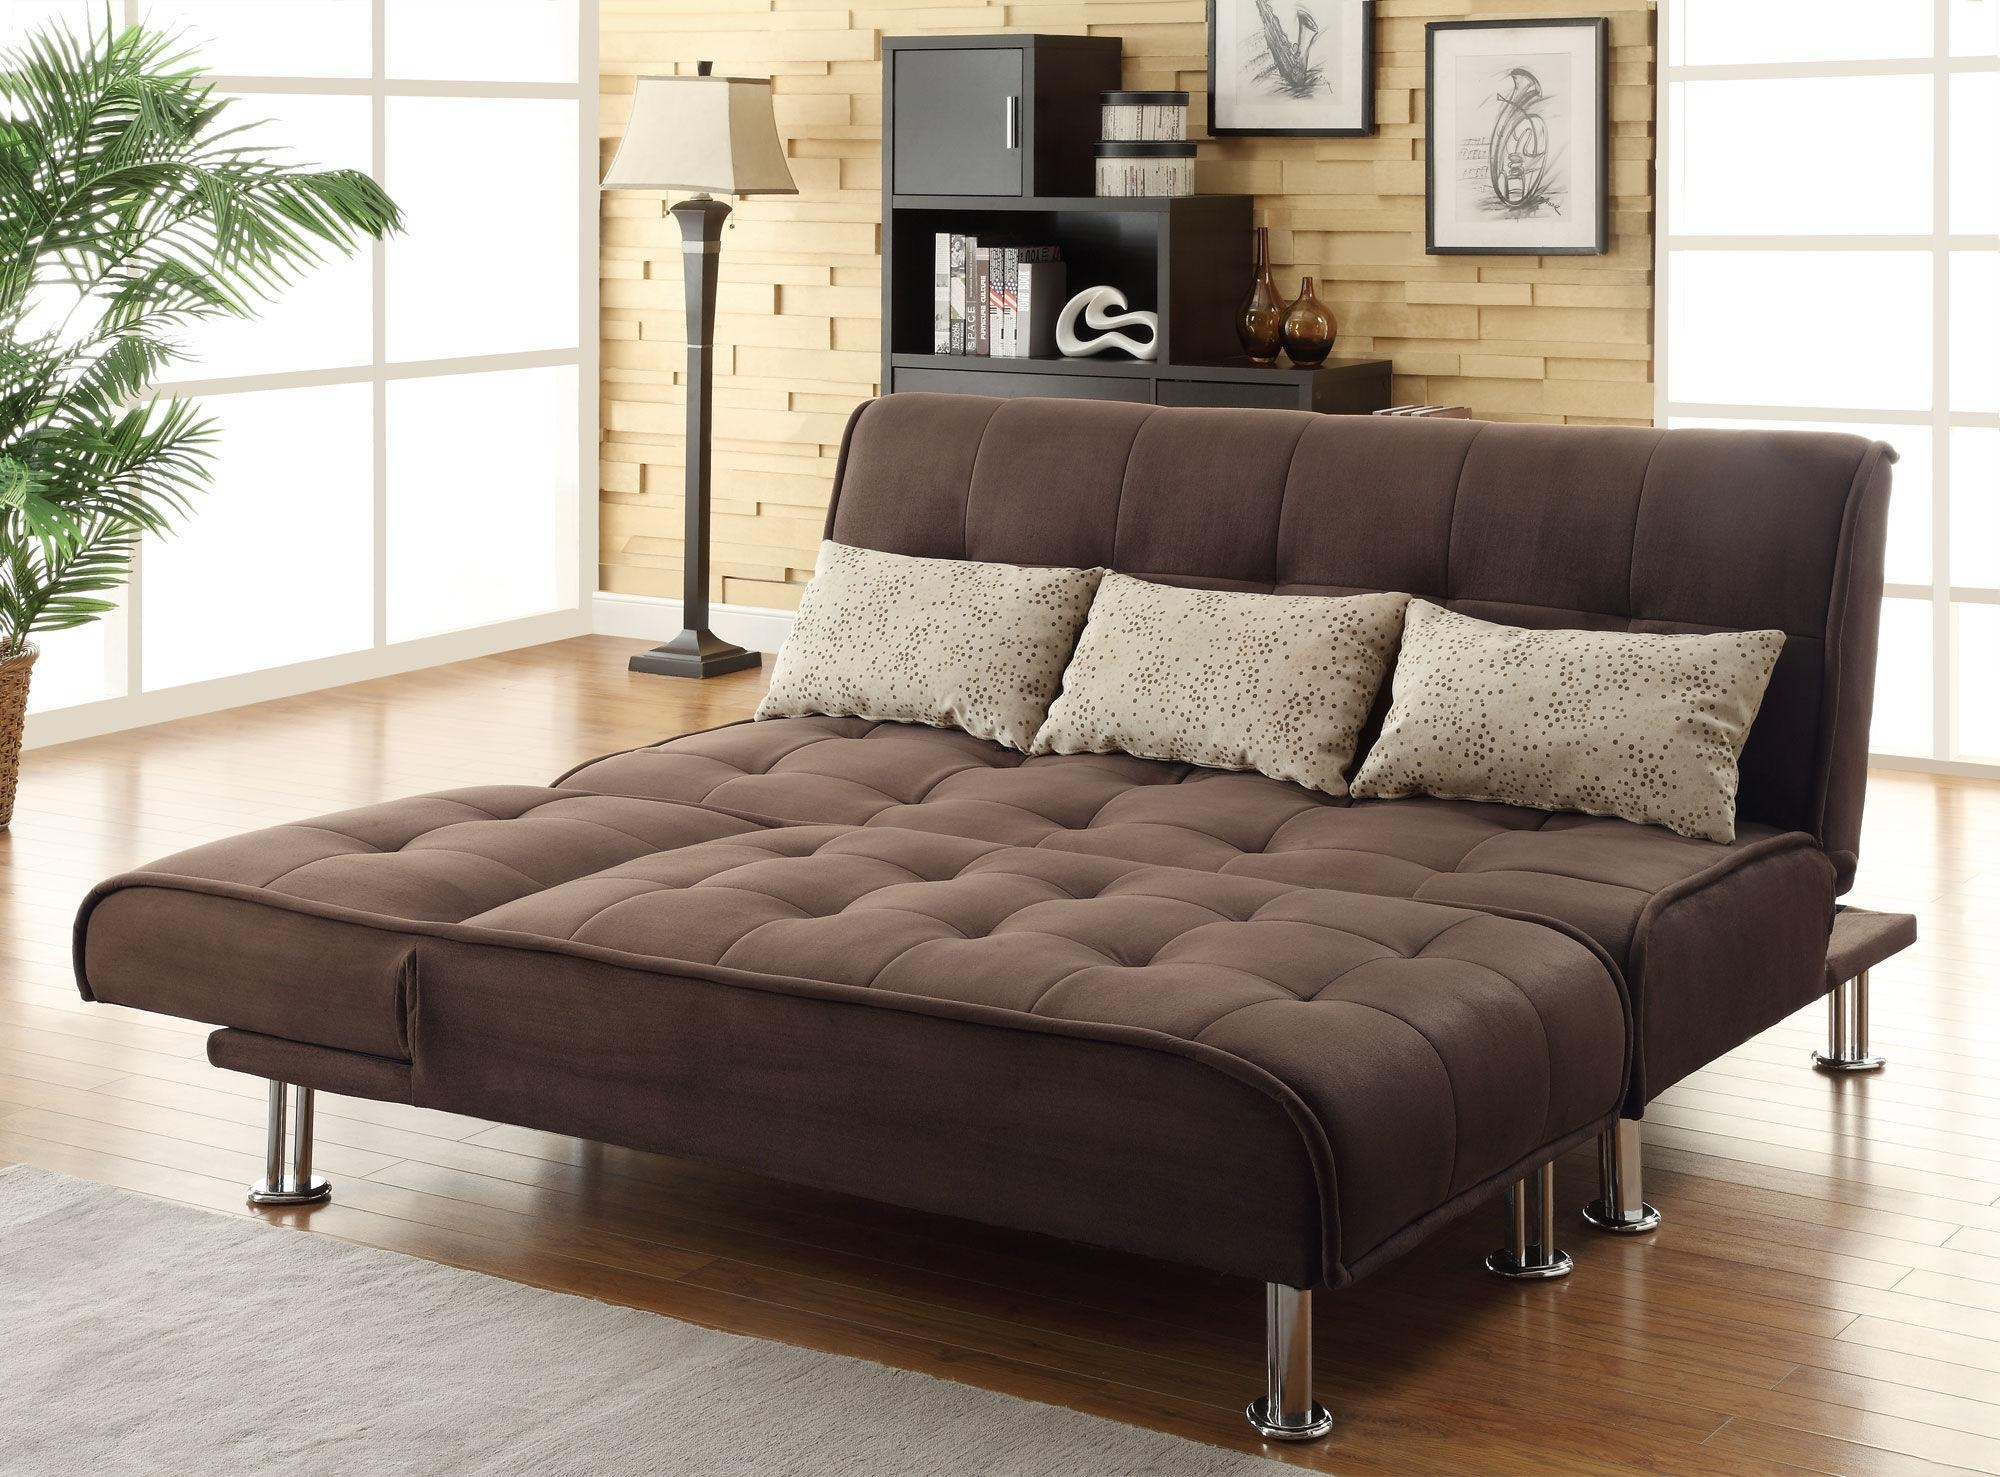 Sofas Center : Innovative Queen Size Sofa Sleeper Fancy Interior Intended For Convertible Queen Sofas (View 19 of 20)